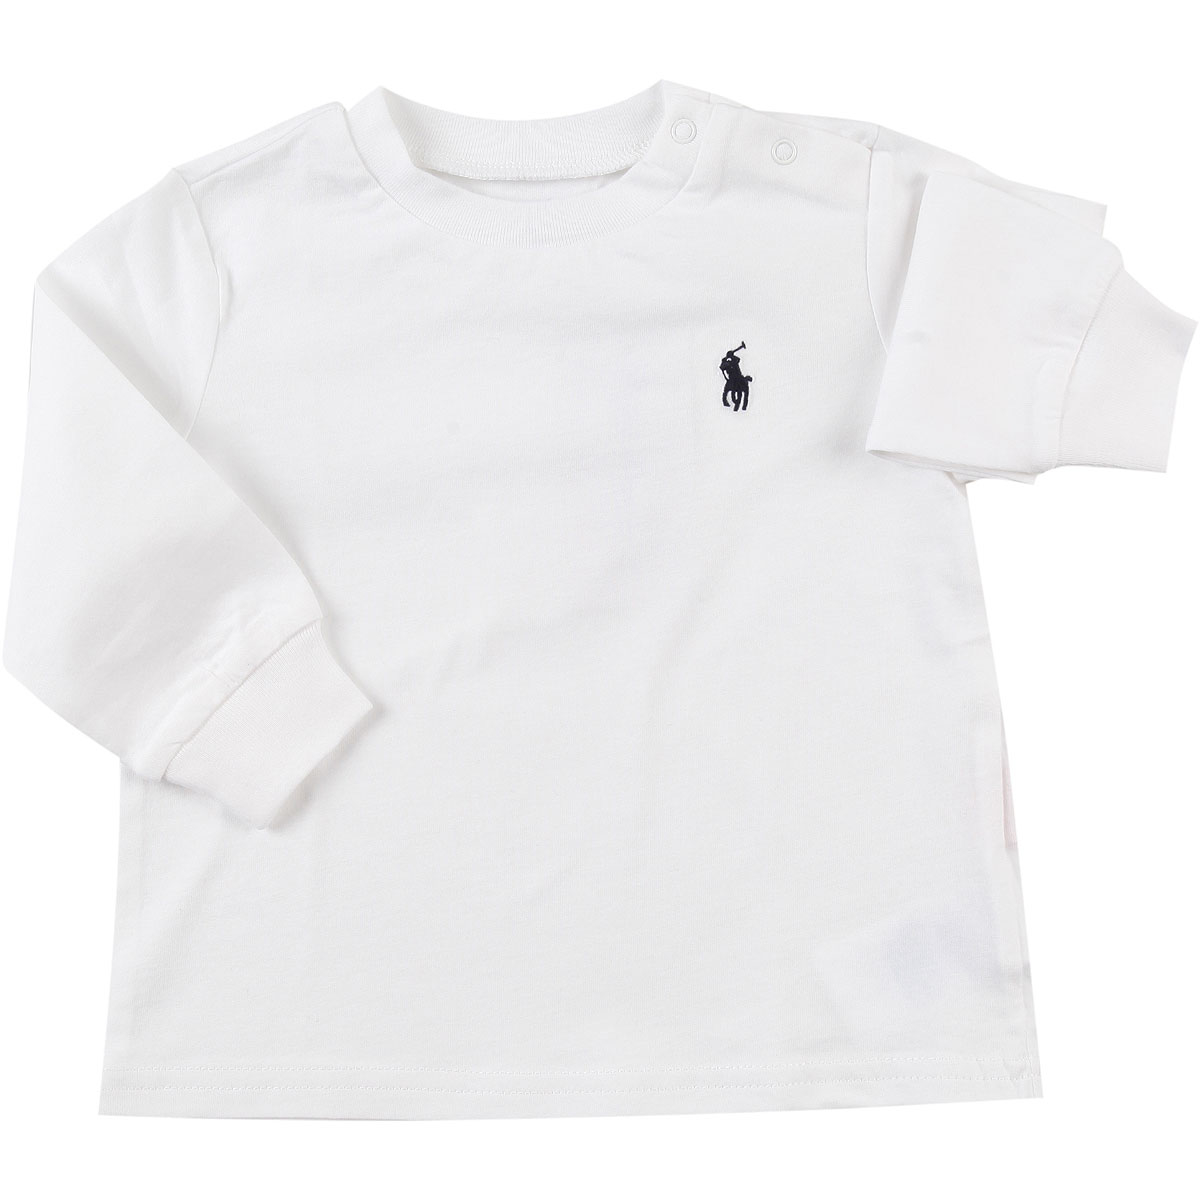 Ralph Lauren Baby T-Shirt for Boys On Sale in Outlet White DK - GOOFASH - Mens T-SHIRTS